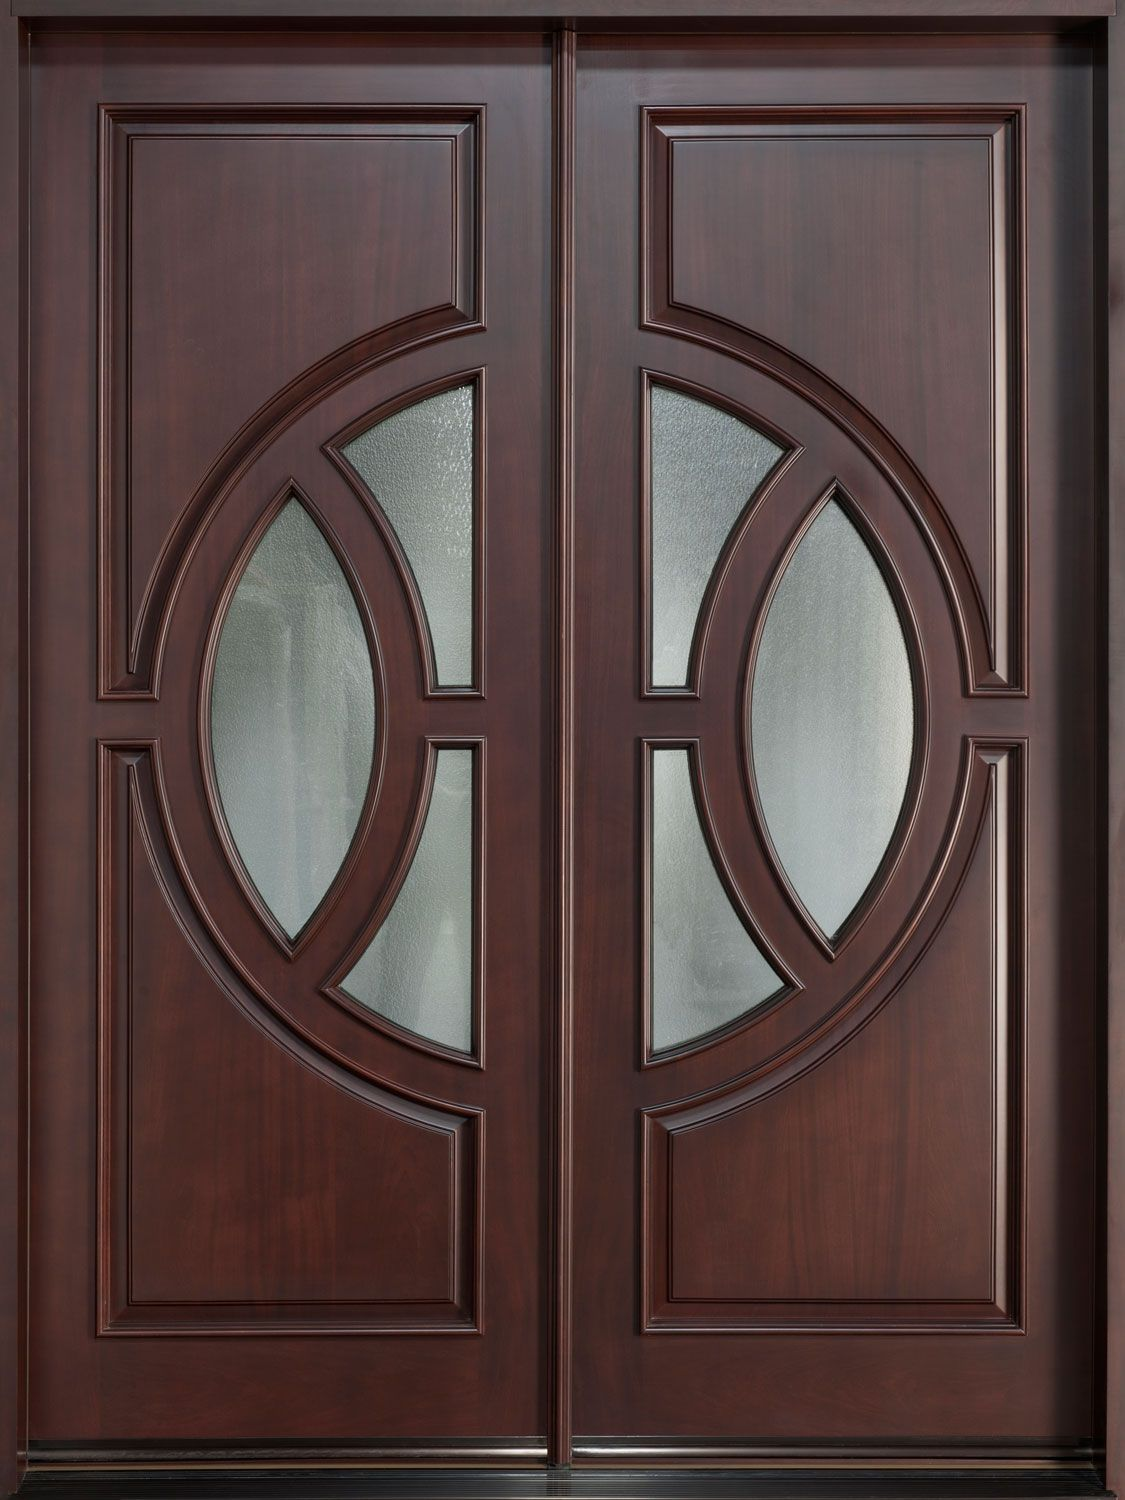 Elegant Double Entry Doors With Side Light Google Search